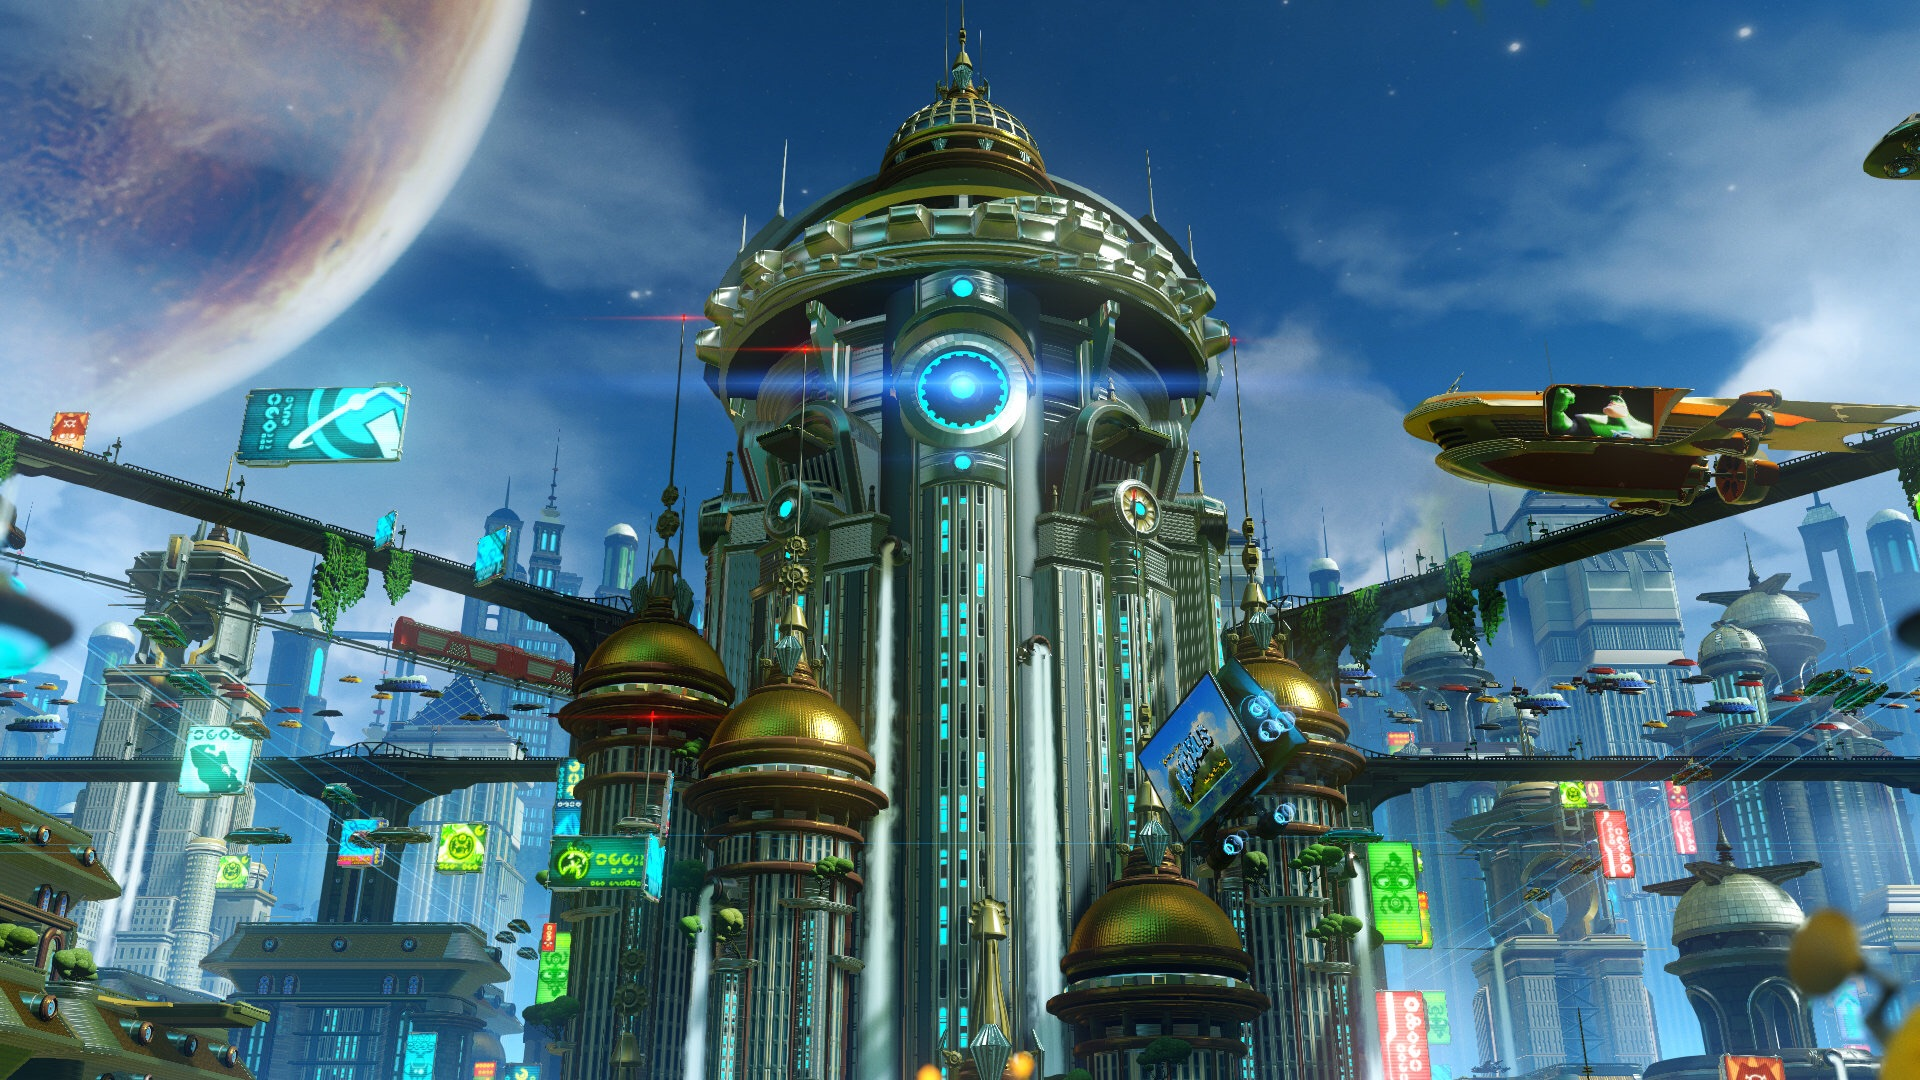 Ratchet And Clank Ps4 Screenshot 15 By Caprice1996 On Deviantart